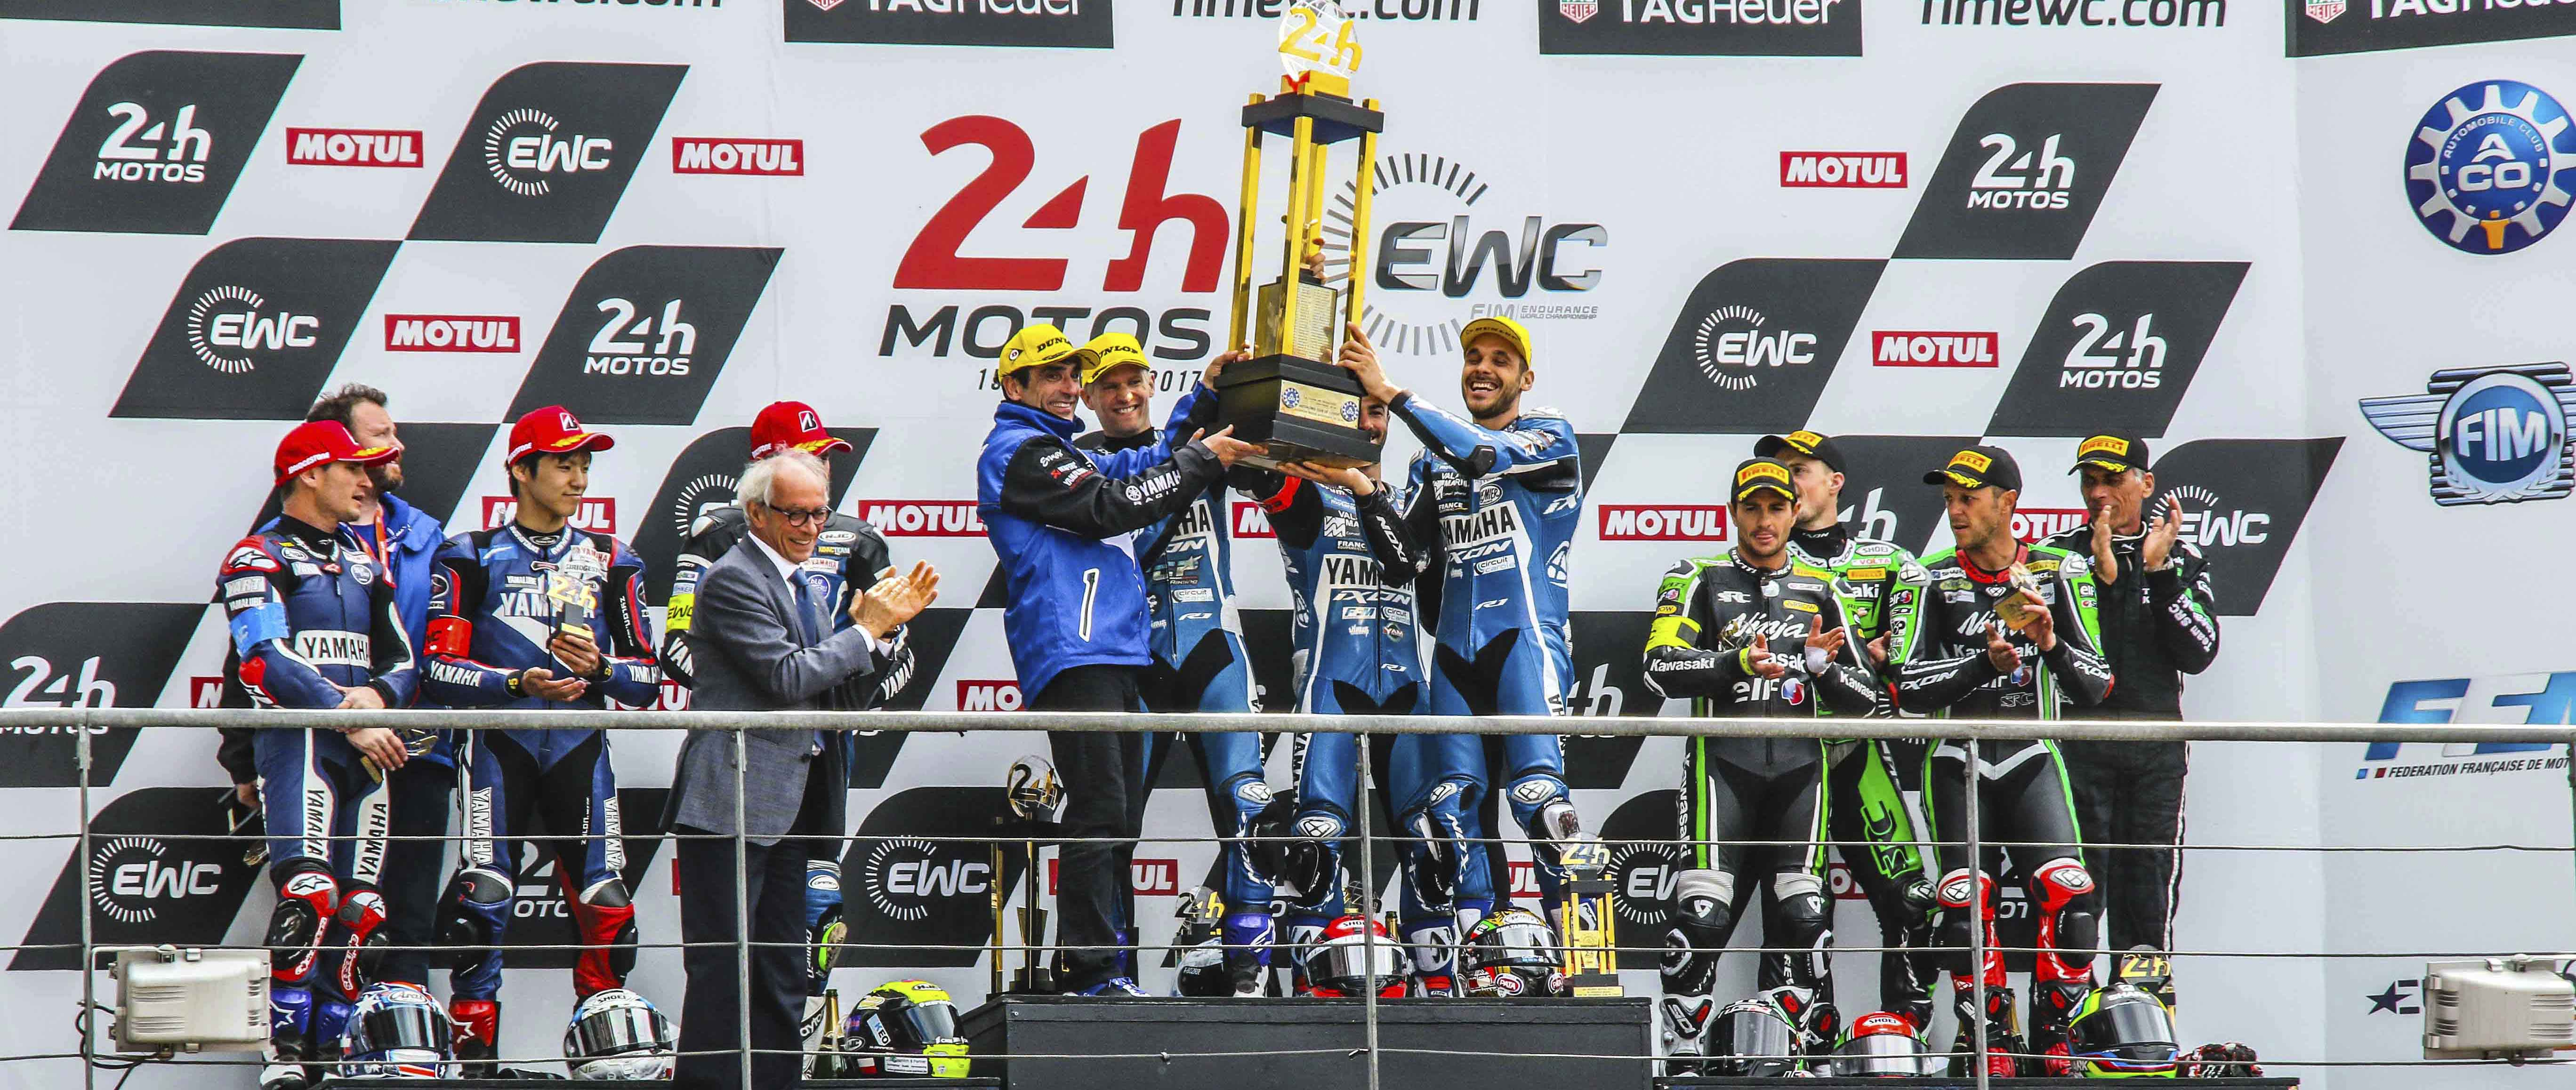 GMT94 carries off a brilliant win against YART and SRC